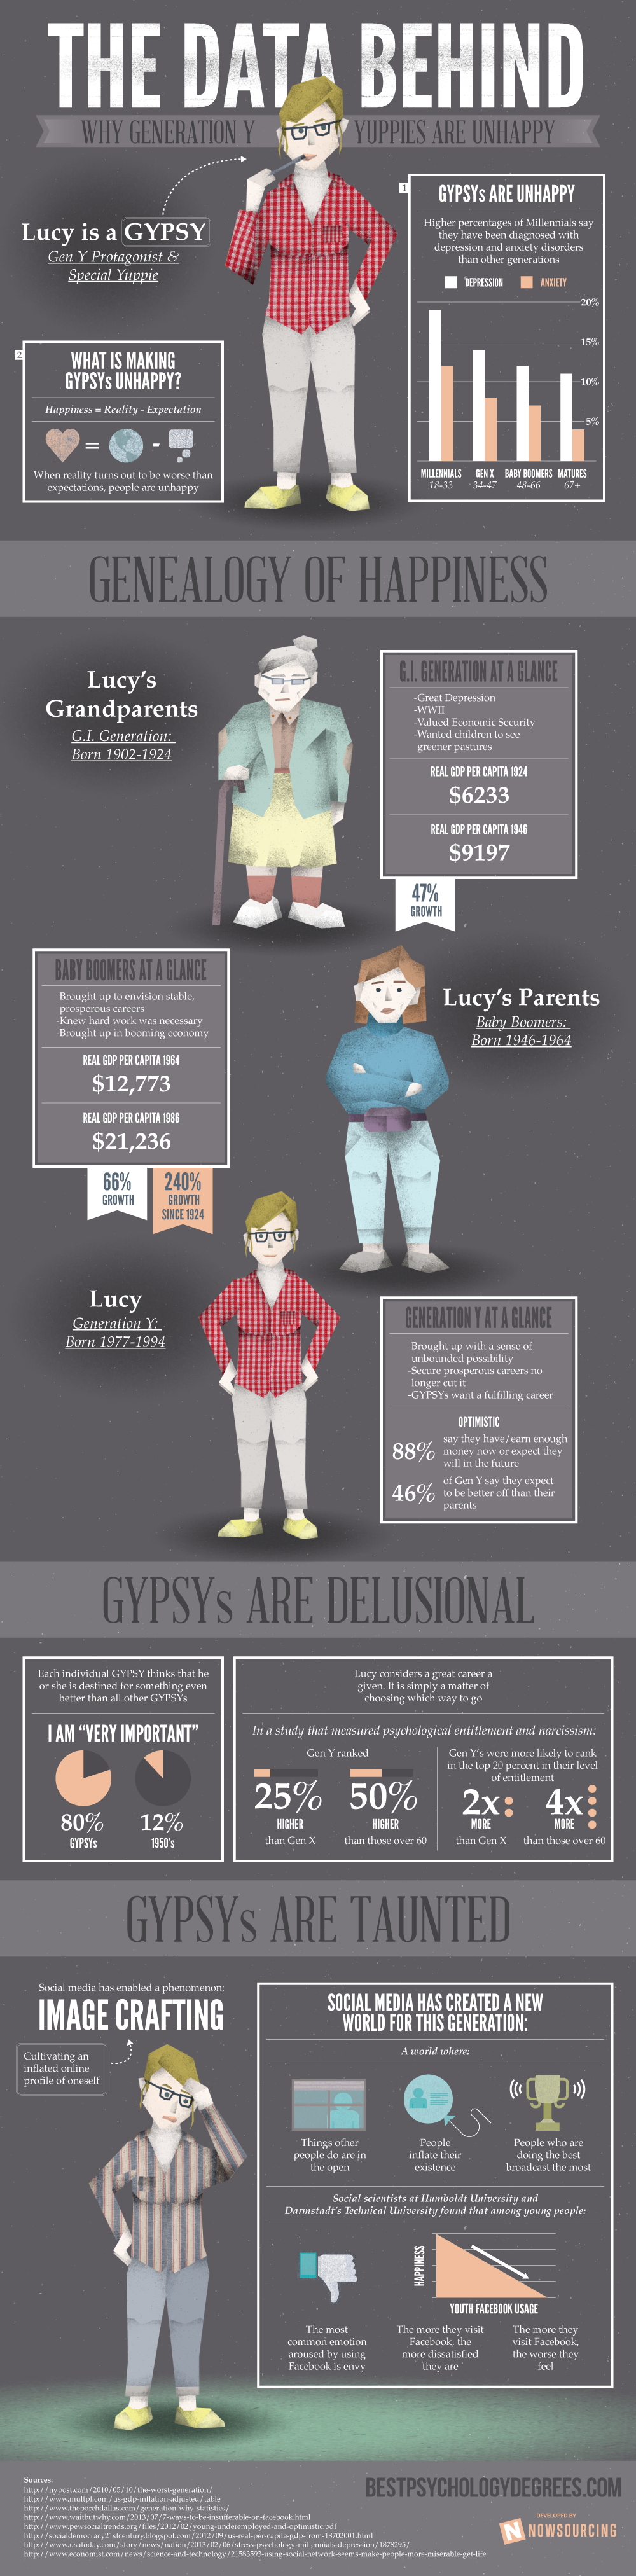 Why Are Generation Y Yuppies Unhappy? [Infographic] image yuppies1